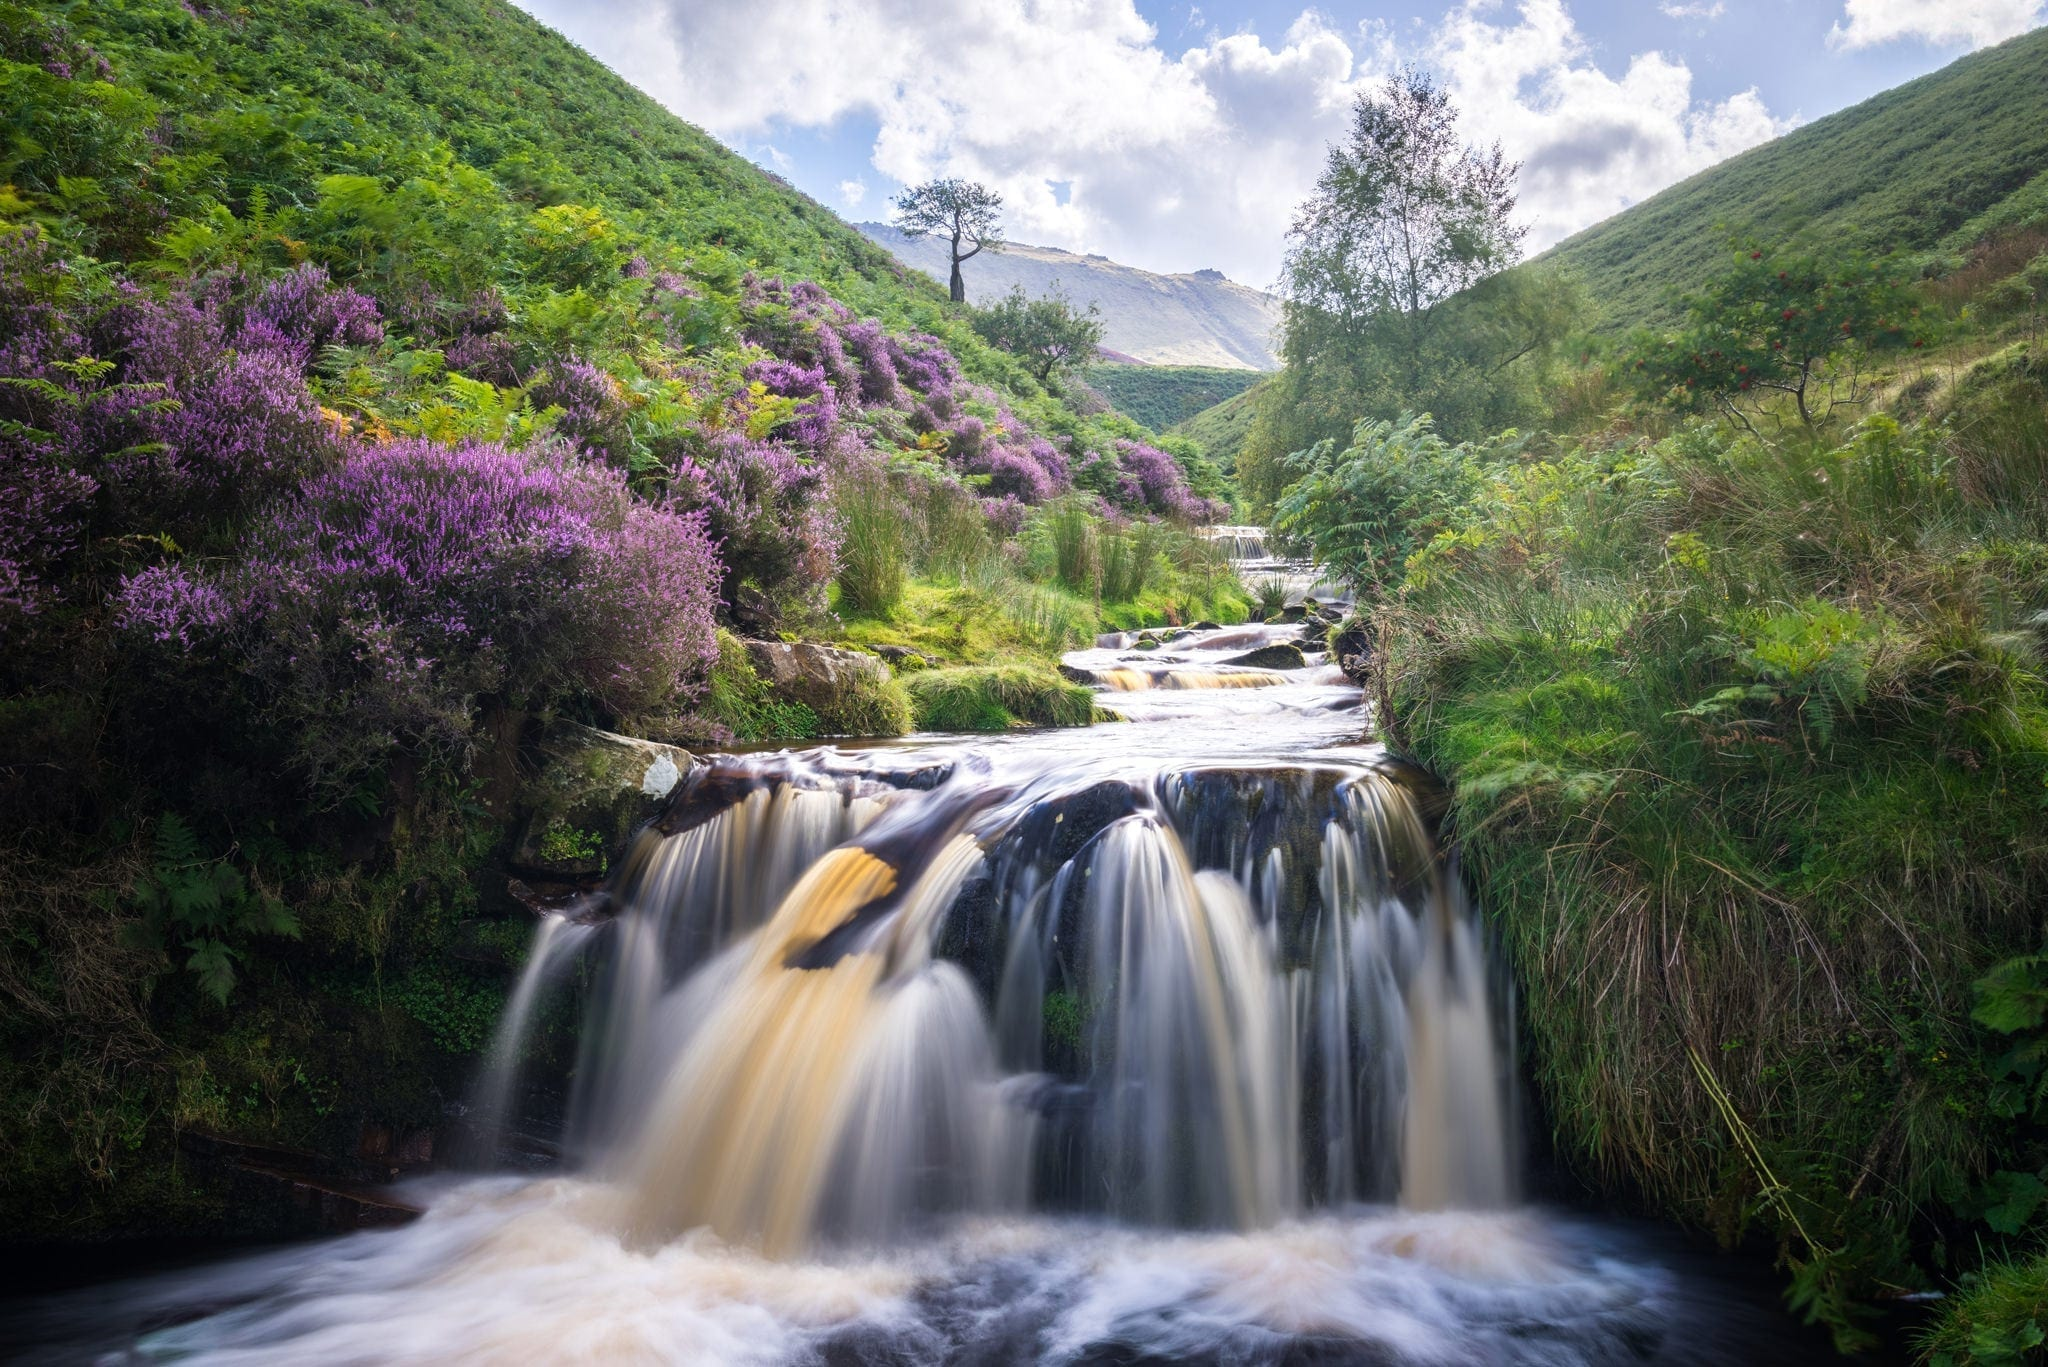 http://www.jamesgphotography.co.uk/wp-content/uploads/2016/10/Fair-Brook-Waterfall-Peak-District-Photography.jpg